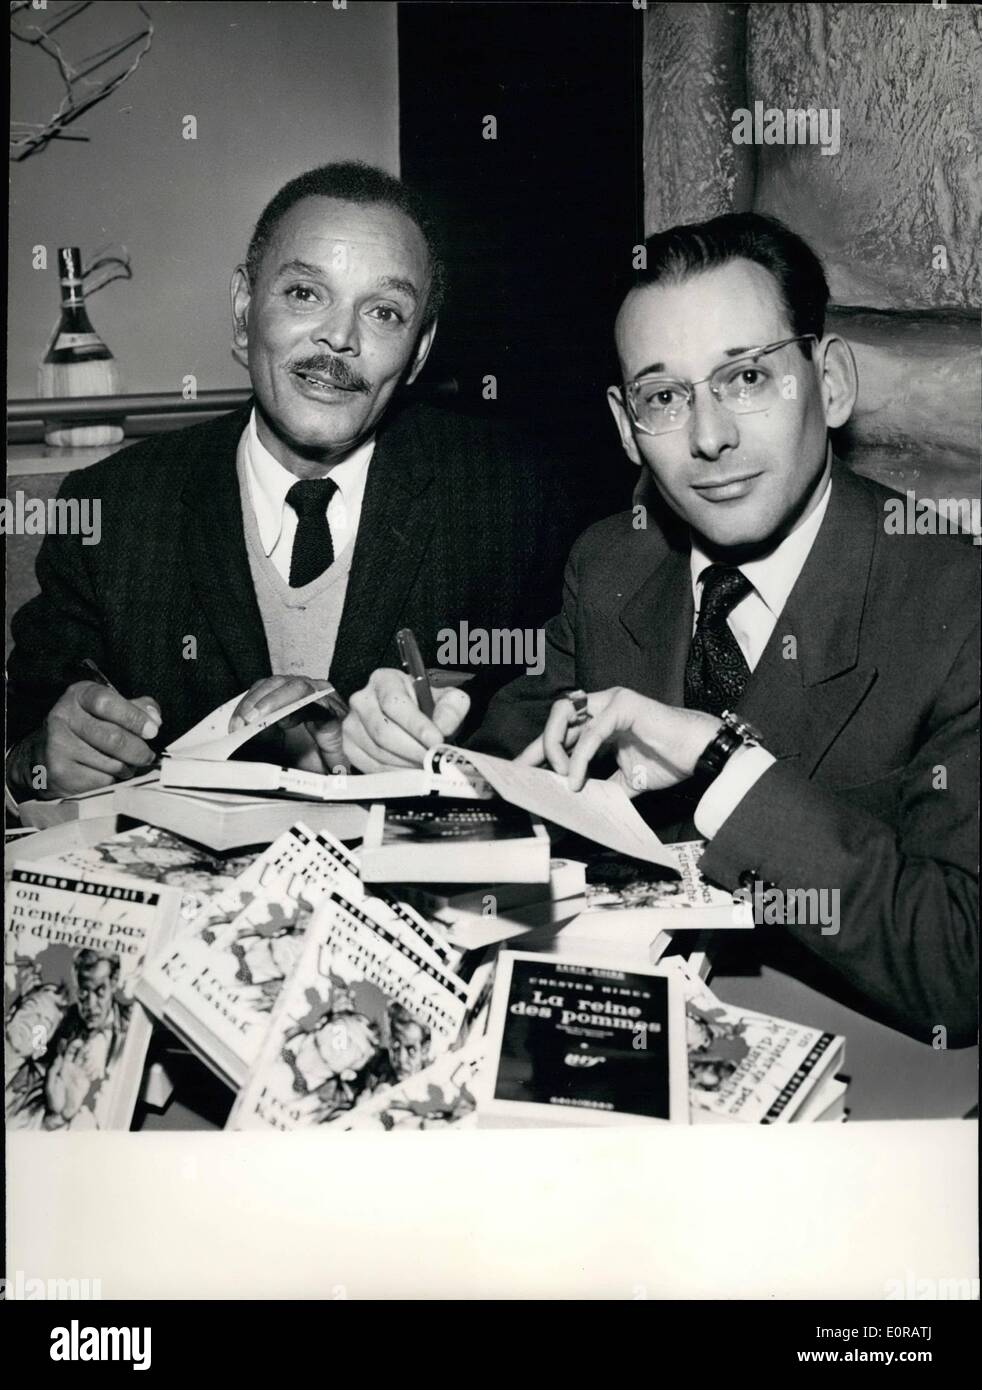 Nov. 11, 1958 - Authors Of Best Detective Stories Rewarded: French novelist Fred Kassak (right) and the American Chester Himes were each awarded the Grand Prix of Detective stories 1958 in Paris yesterday. Kassak is the author of ''On N'enterre pas Le Dimanche'' (No Funerals on Sunday) and Chester Himes is rewarded for his book ''The Apple Queen' - Stock Image